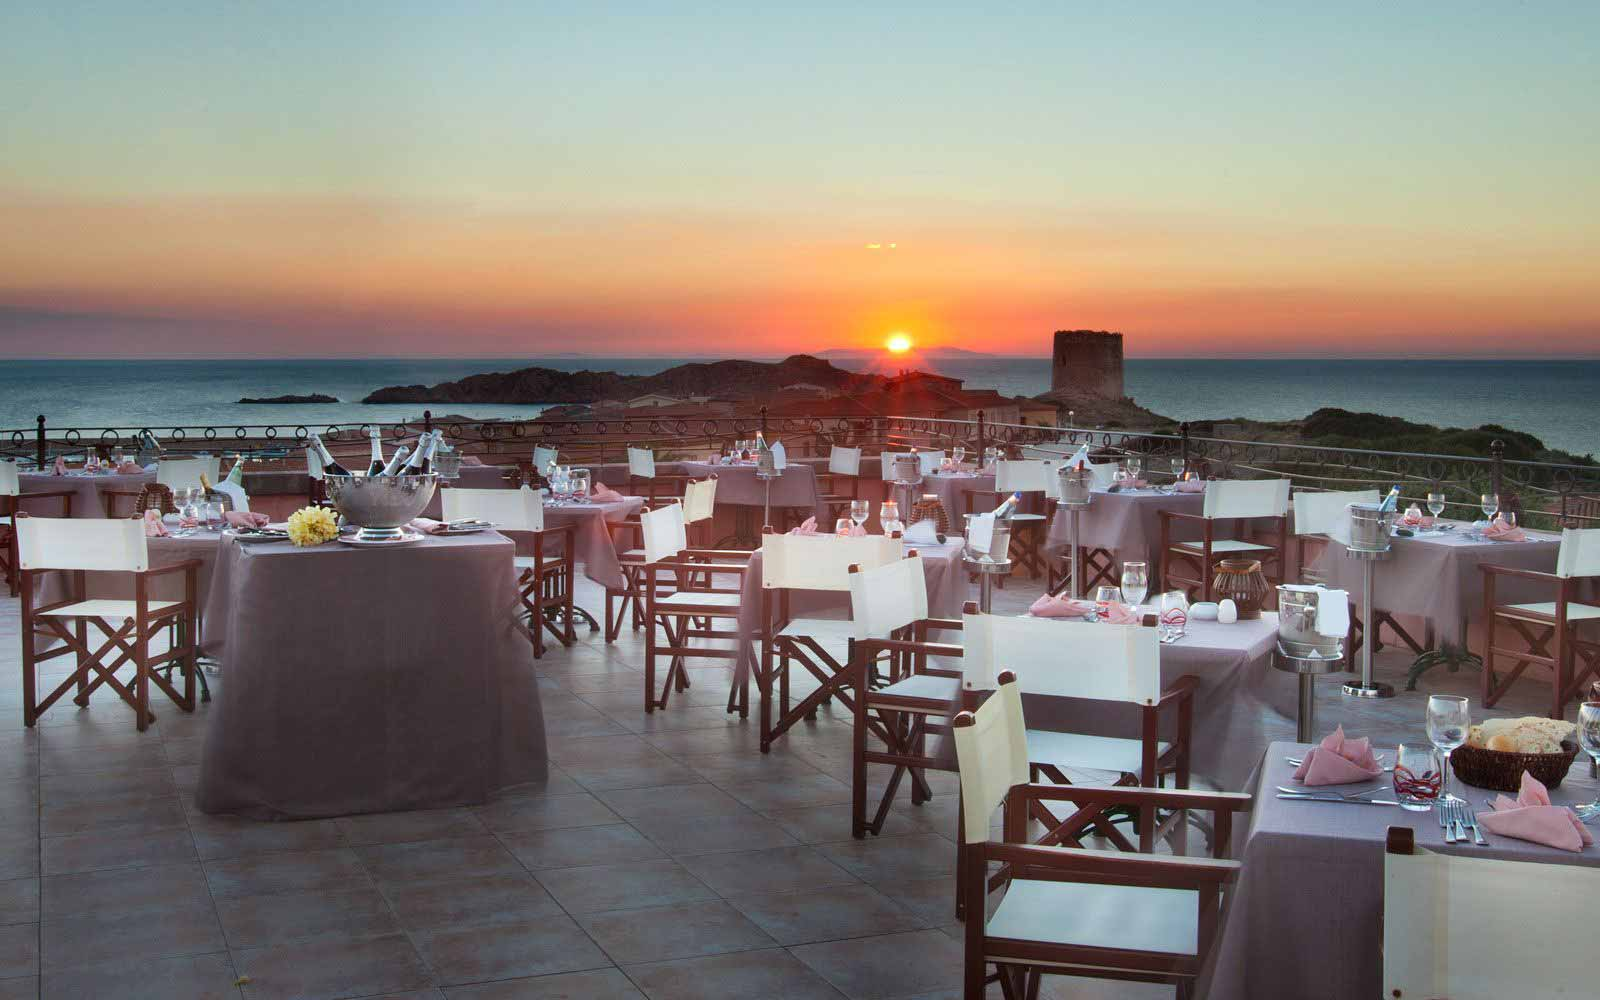 Sotto Le Stelle restaurant at Hotel Relax Torreruja Thalasso & Spa